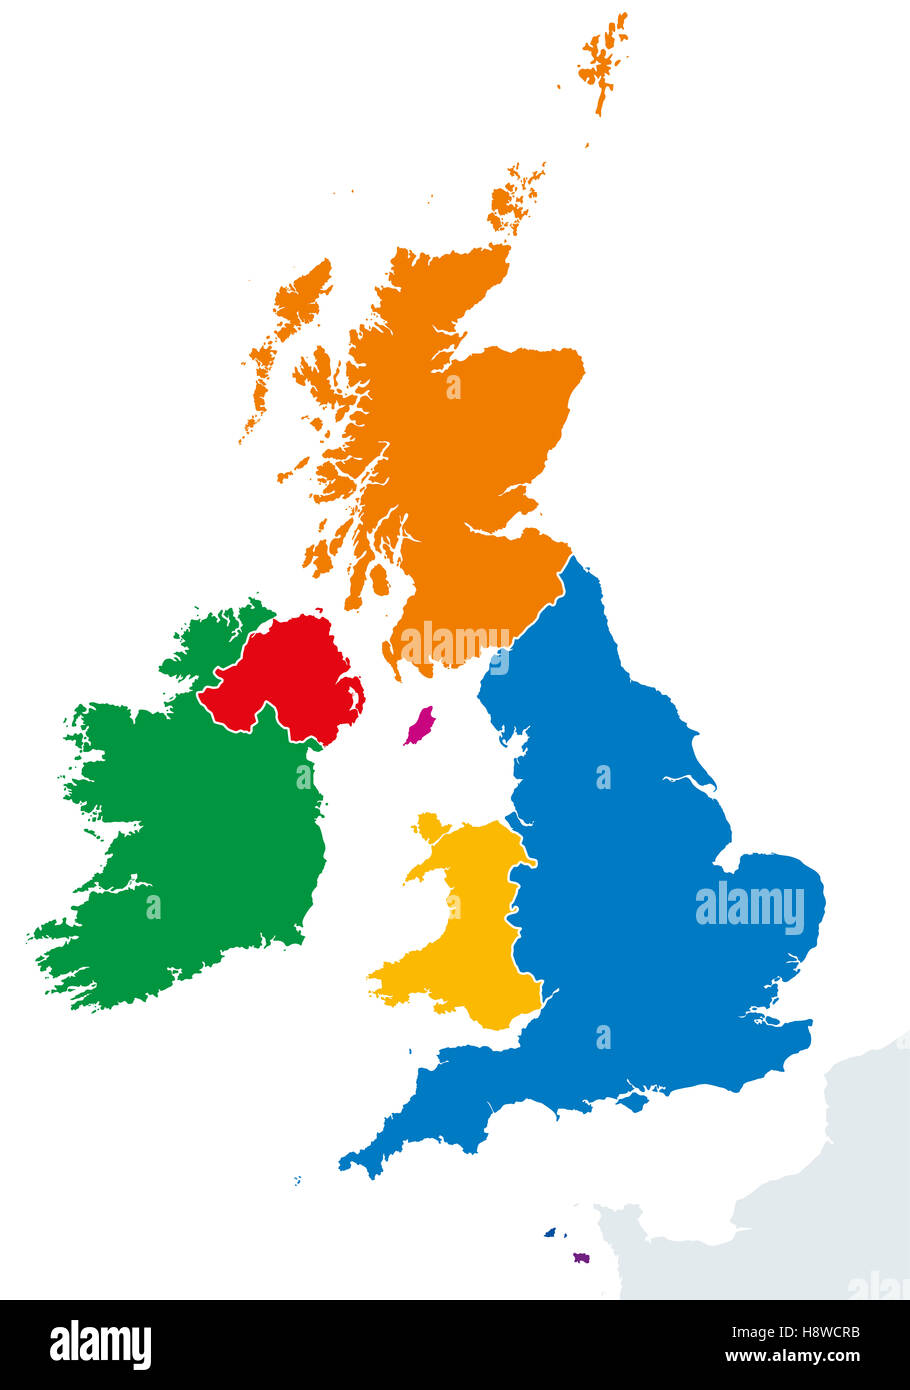 Map Of England Ireland Scotland Wales.British Isles Countries Silhouettes Map Ireland And United Kingdom